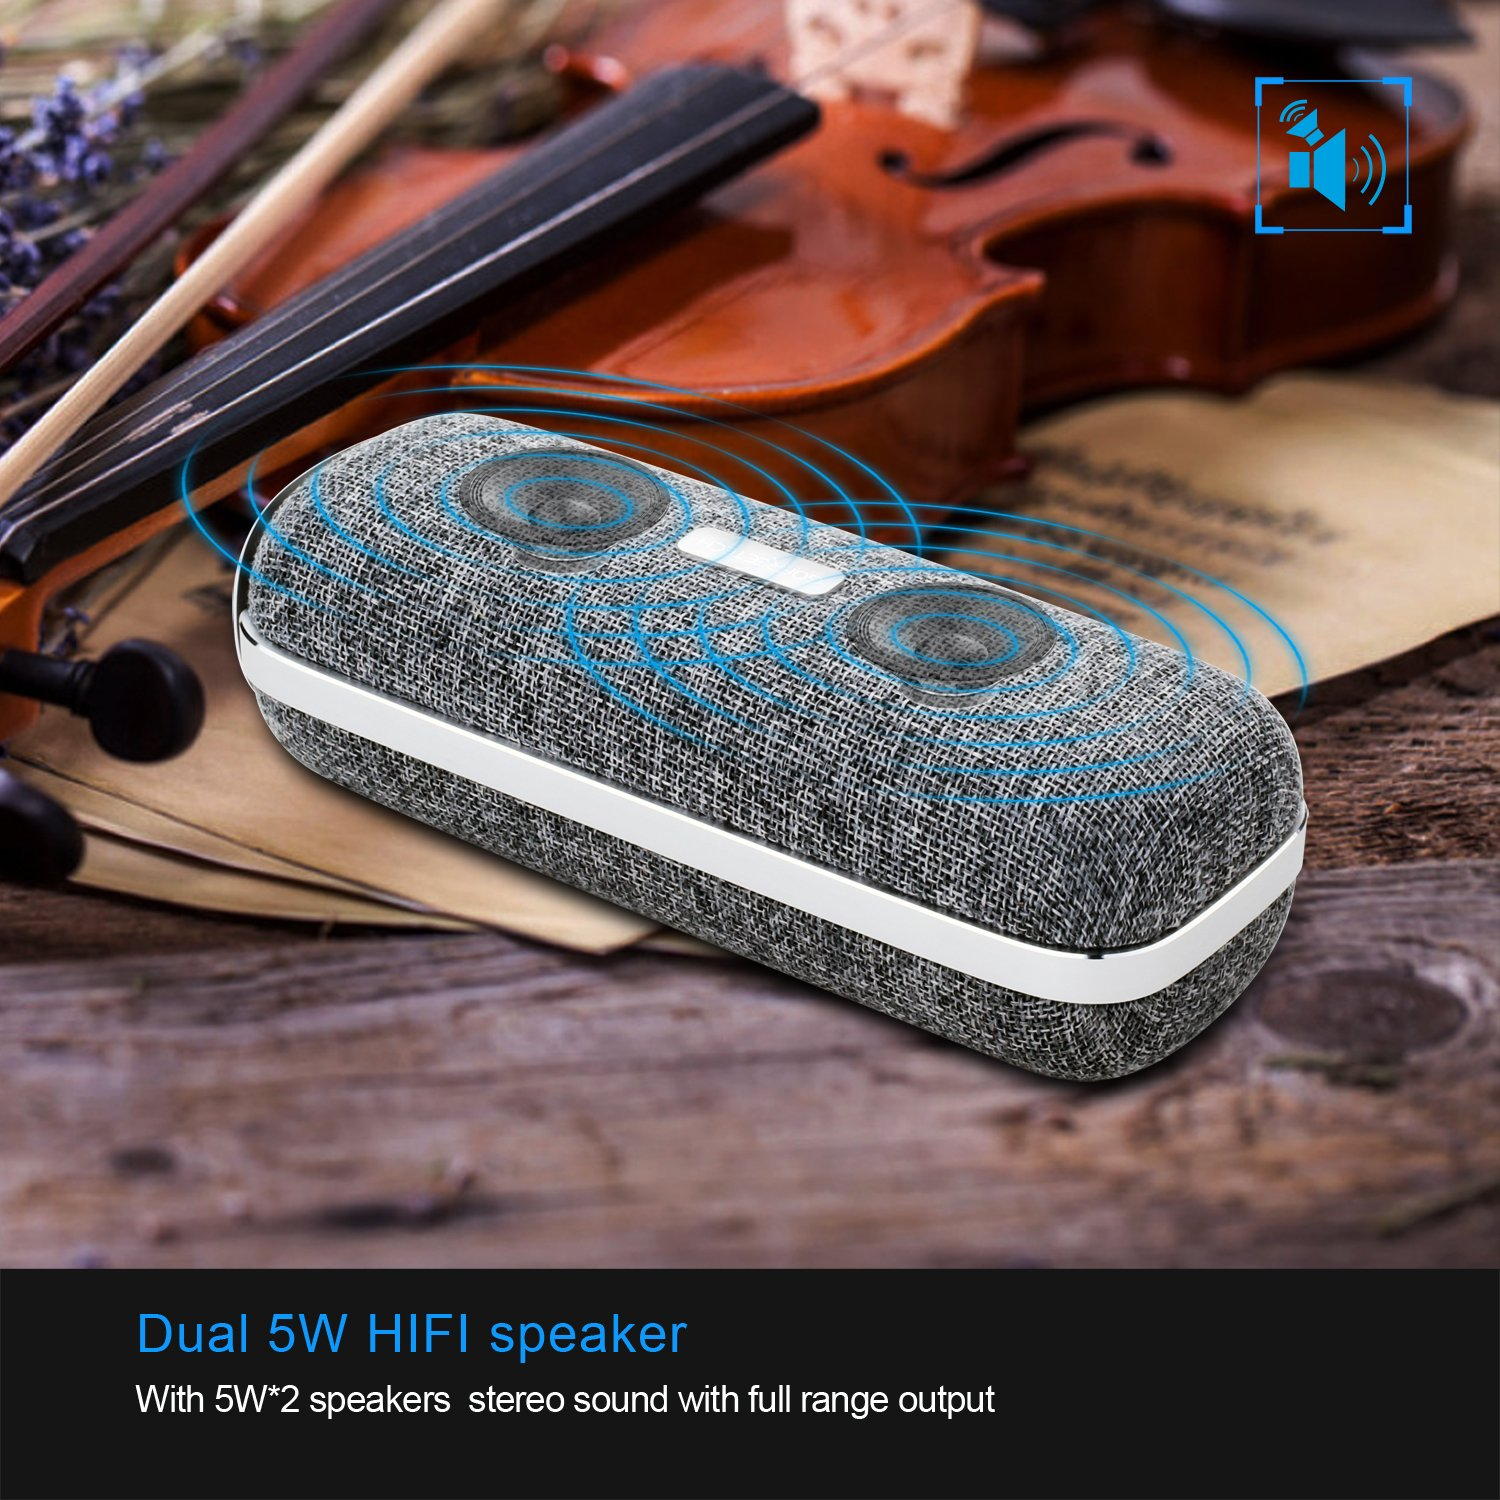 Wireless Bluetooth Speaker, Portable Classic Elegant Stereo Speakers with HD Sound Audio and Enhanced Bass, Bluetooth 4.2/AUX line/Dual Driver Speakers for Home, Beach, Travel, Party - Gofreetech by GOFREETECH (Image #7)